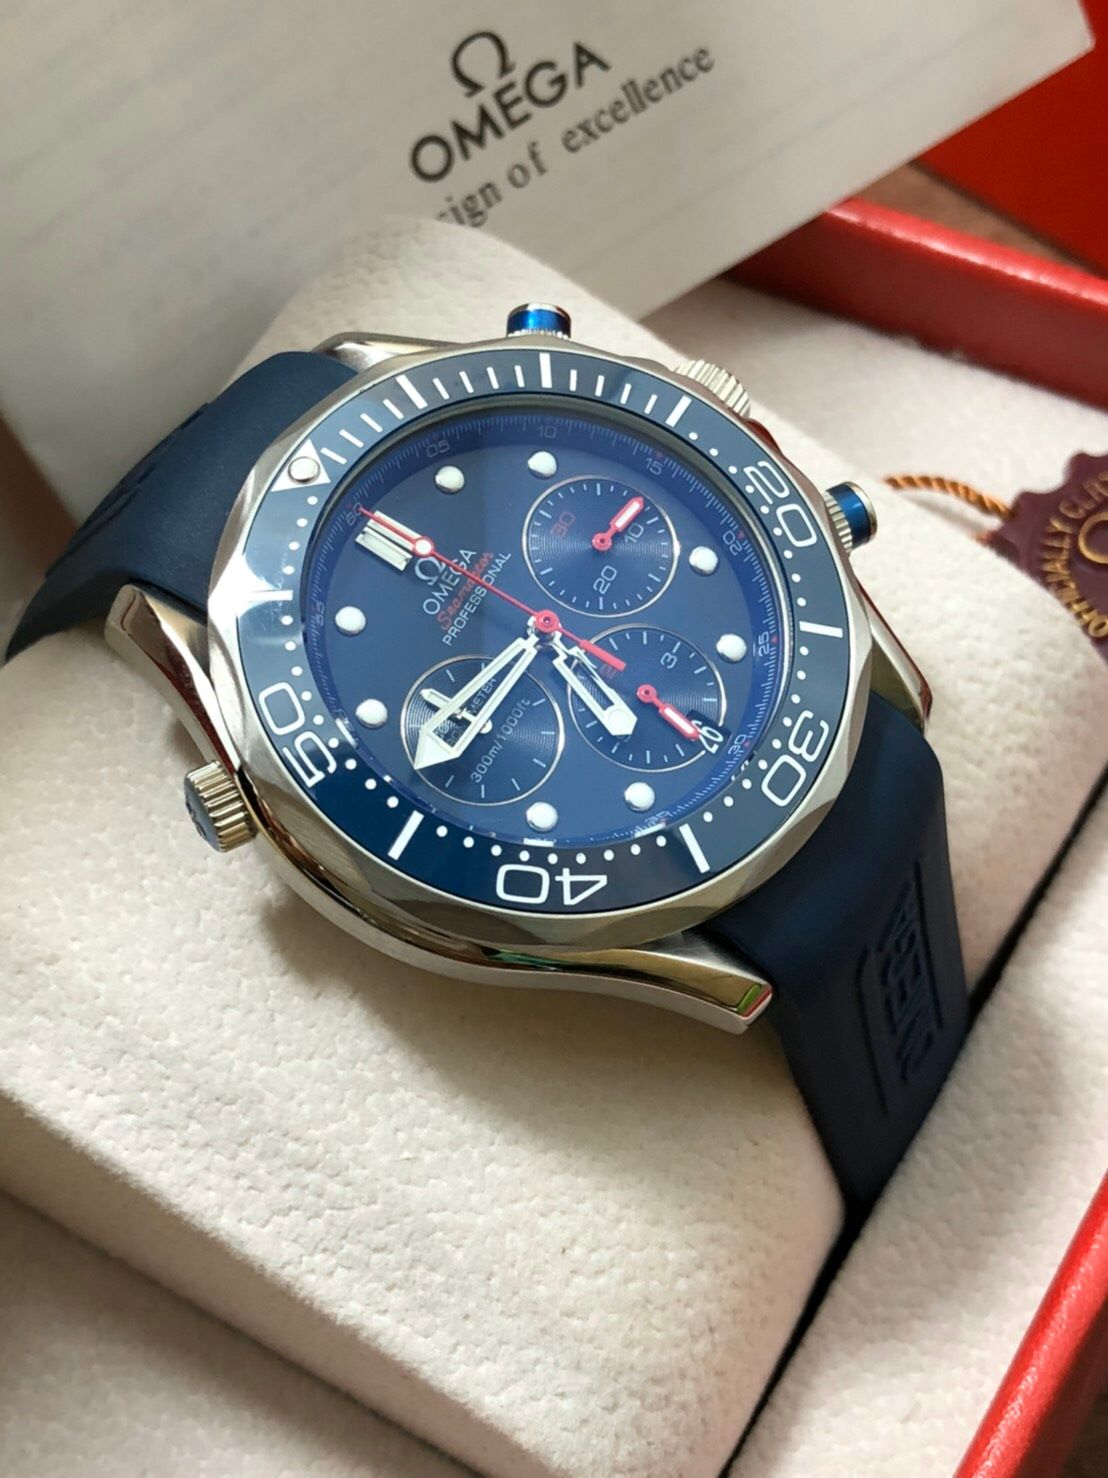 Omega Seamaster Diver 300m Chronograph ETNZ Limited Edition Rubber strap Blue Dial